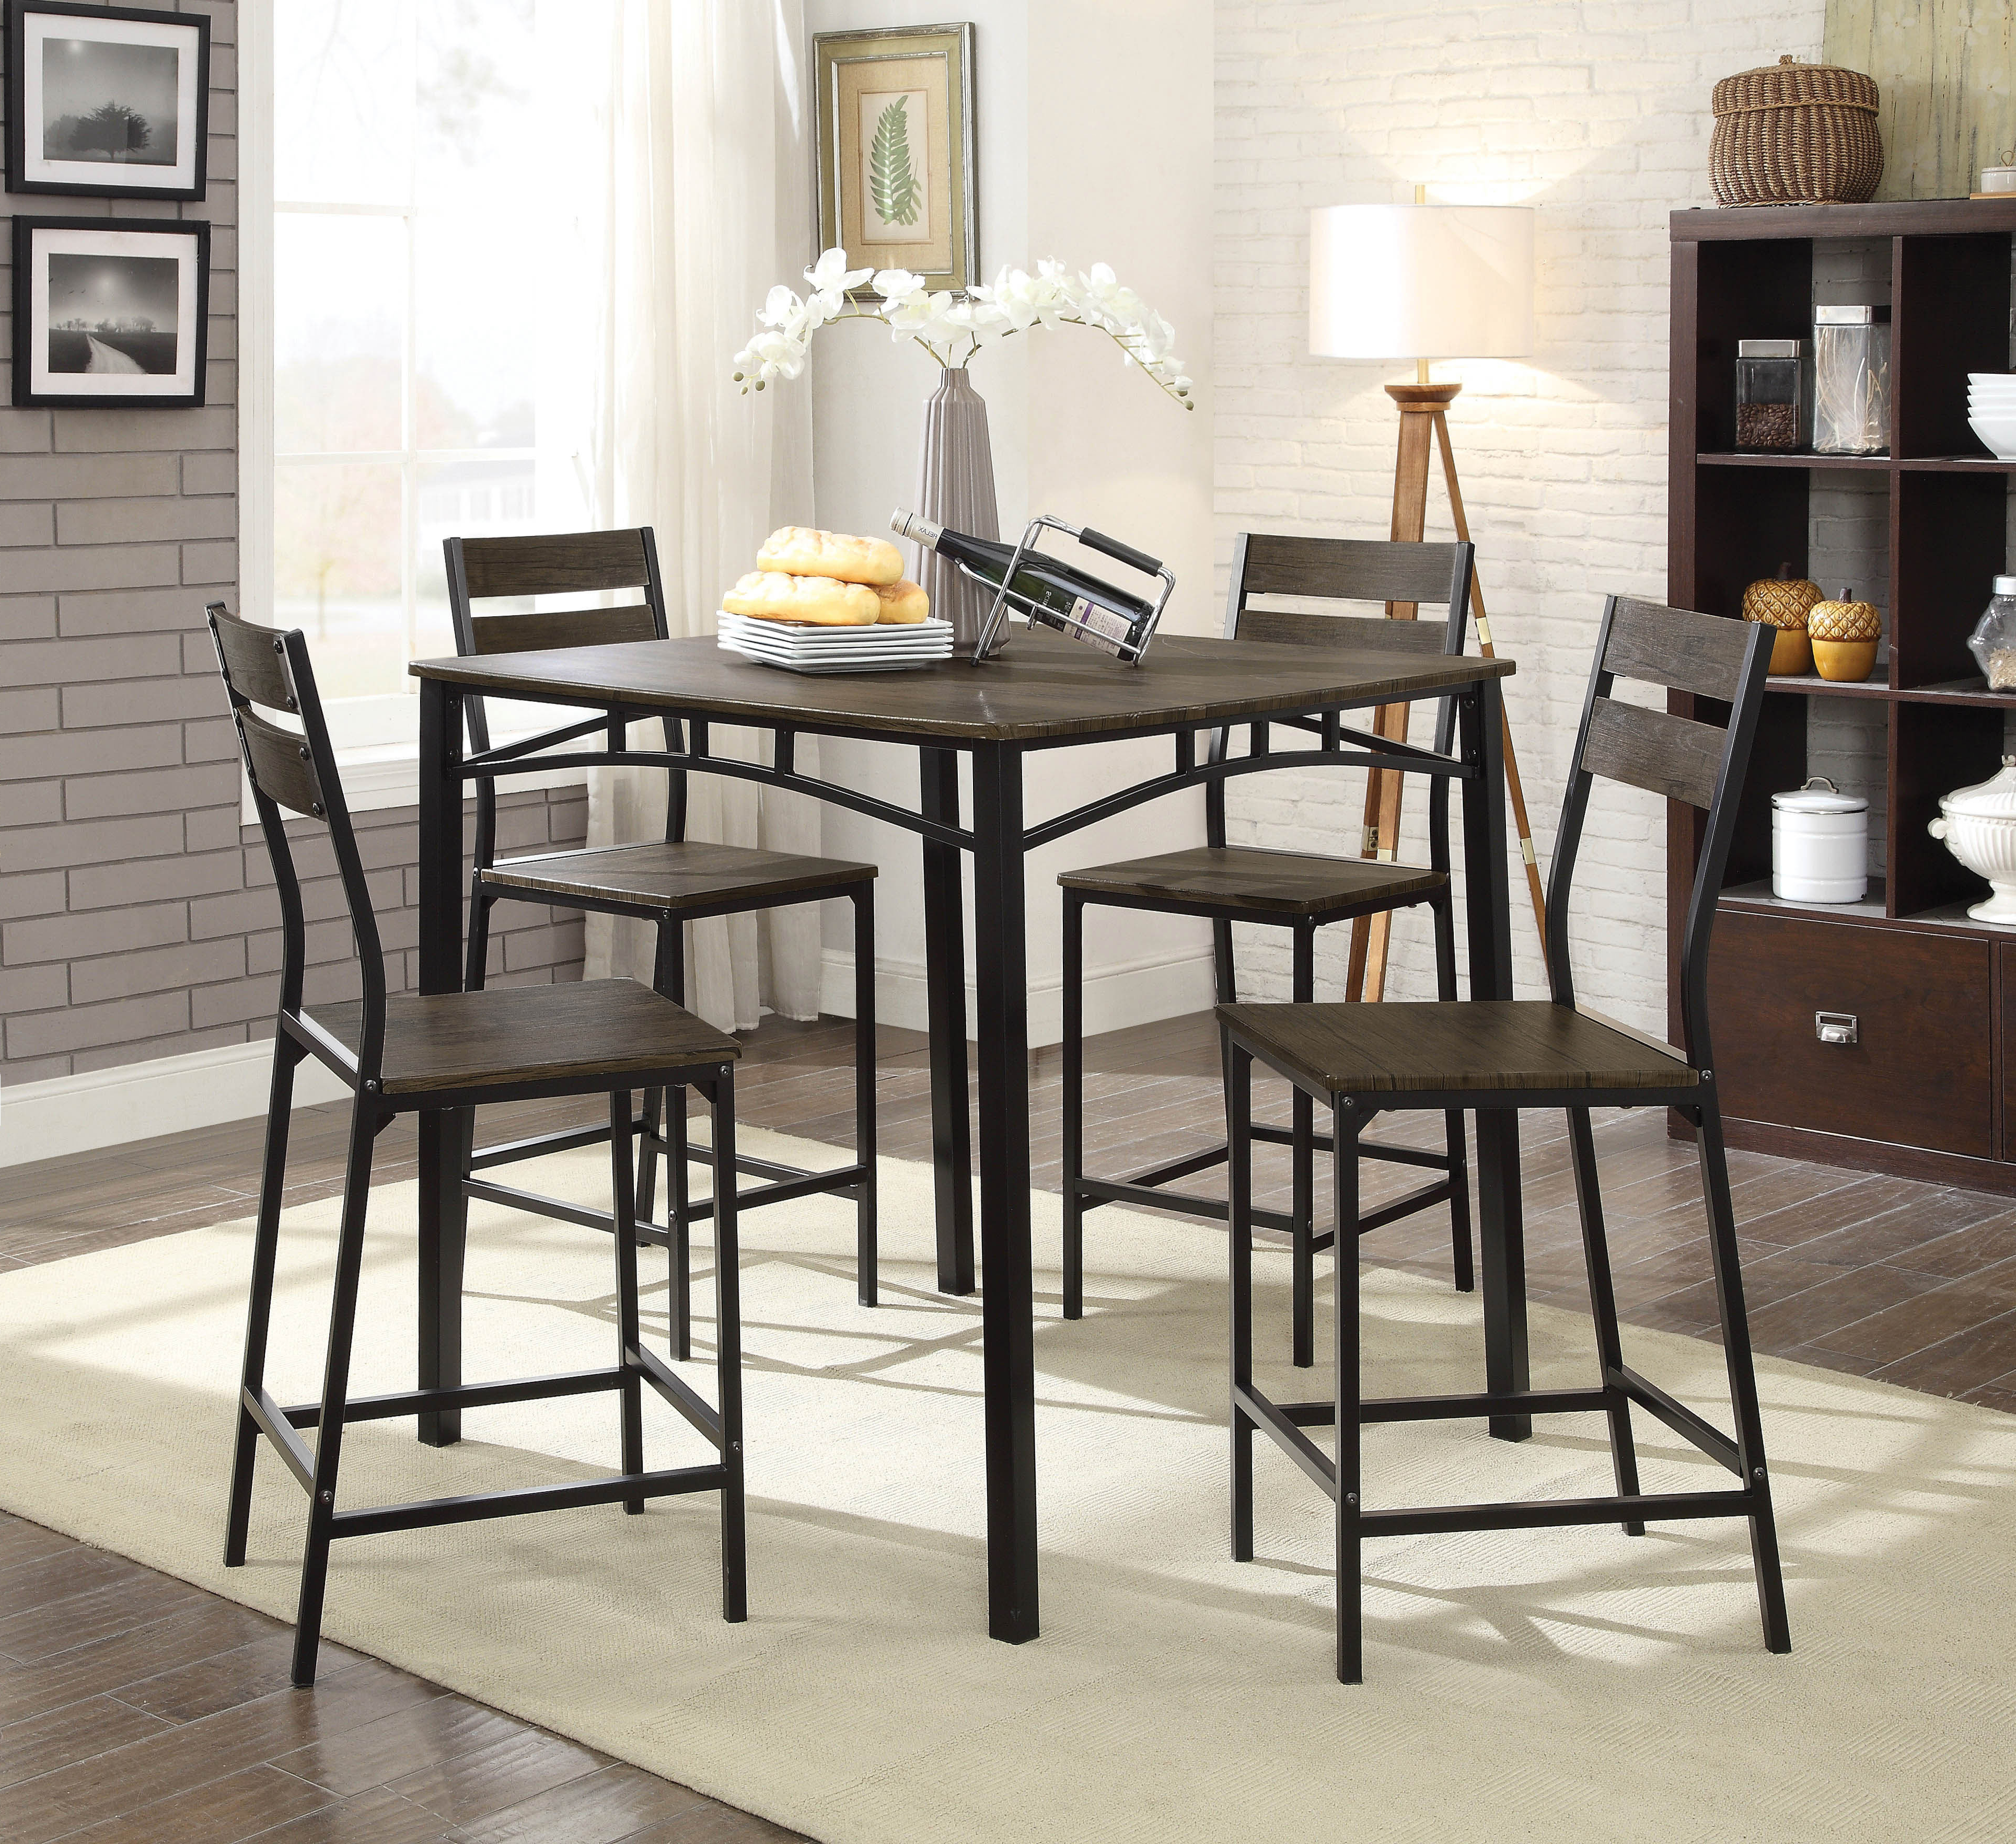 Well Liked Autberry 5 Piece Pub Table Set With Regard To Autberry 5 Piece Dining Sets (View 2 of 20)